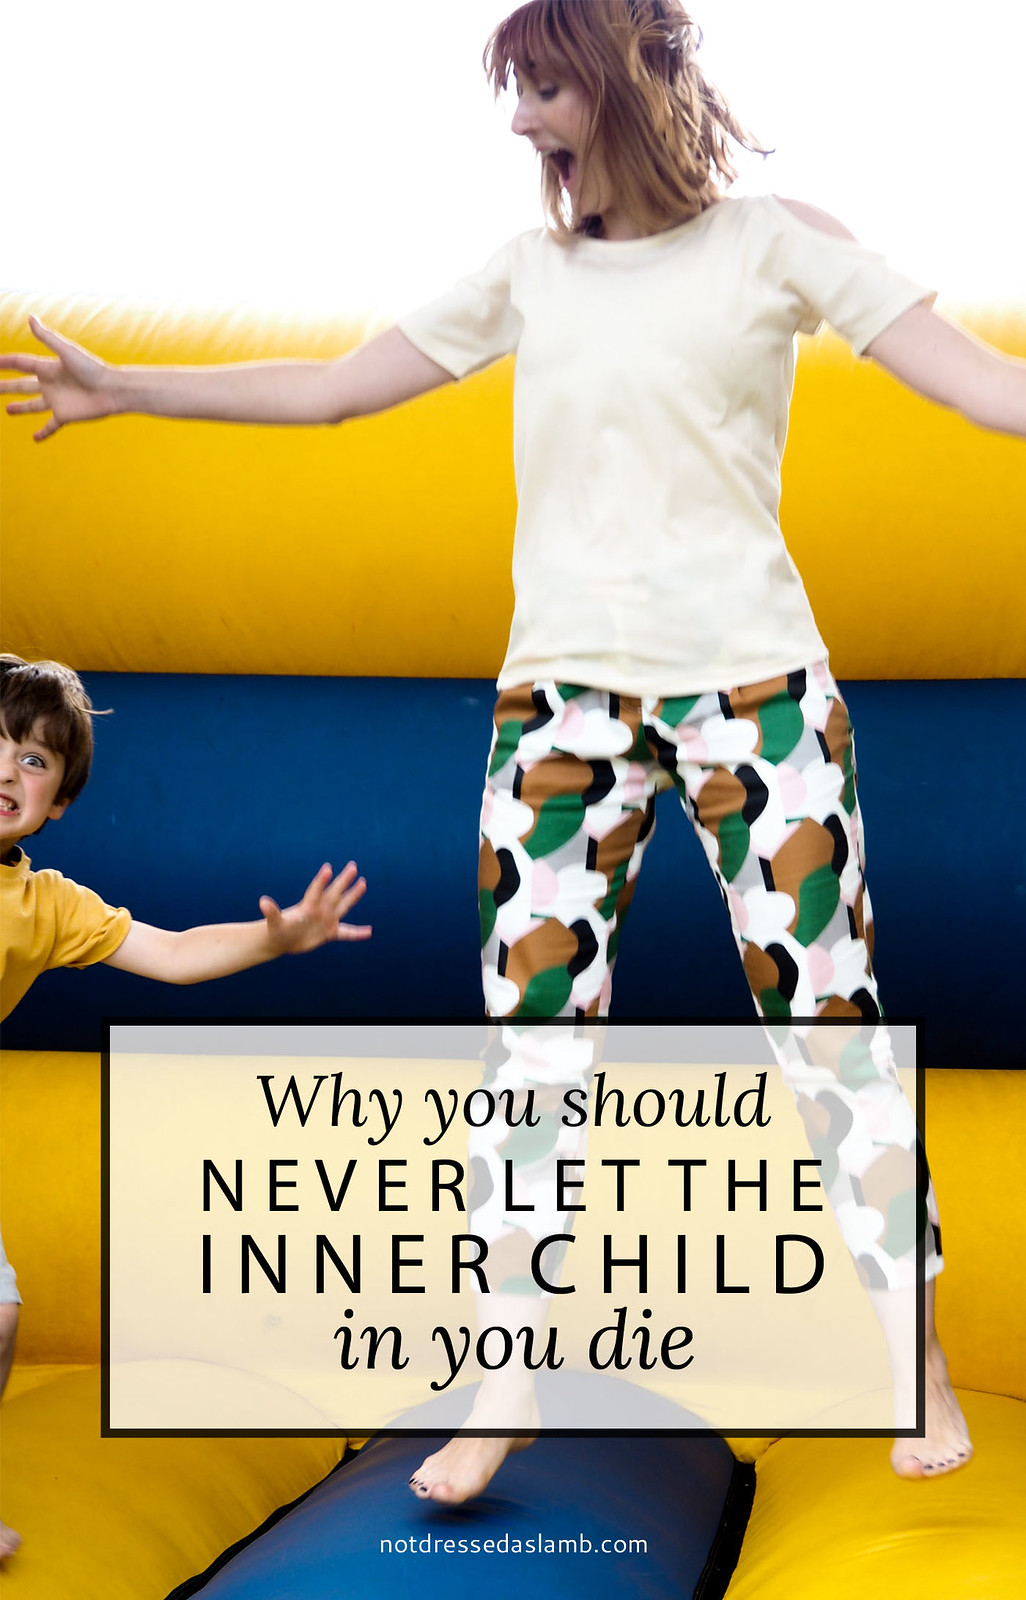 Why You Should Never Let the Inner Child in You Die